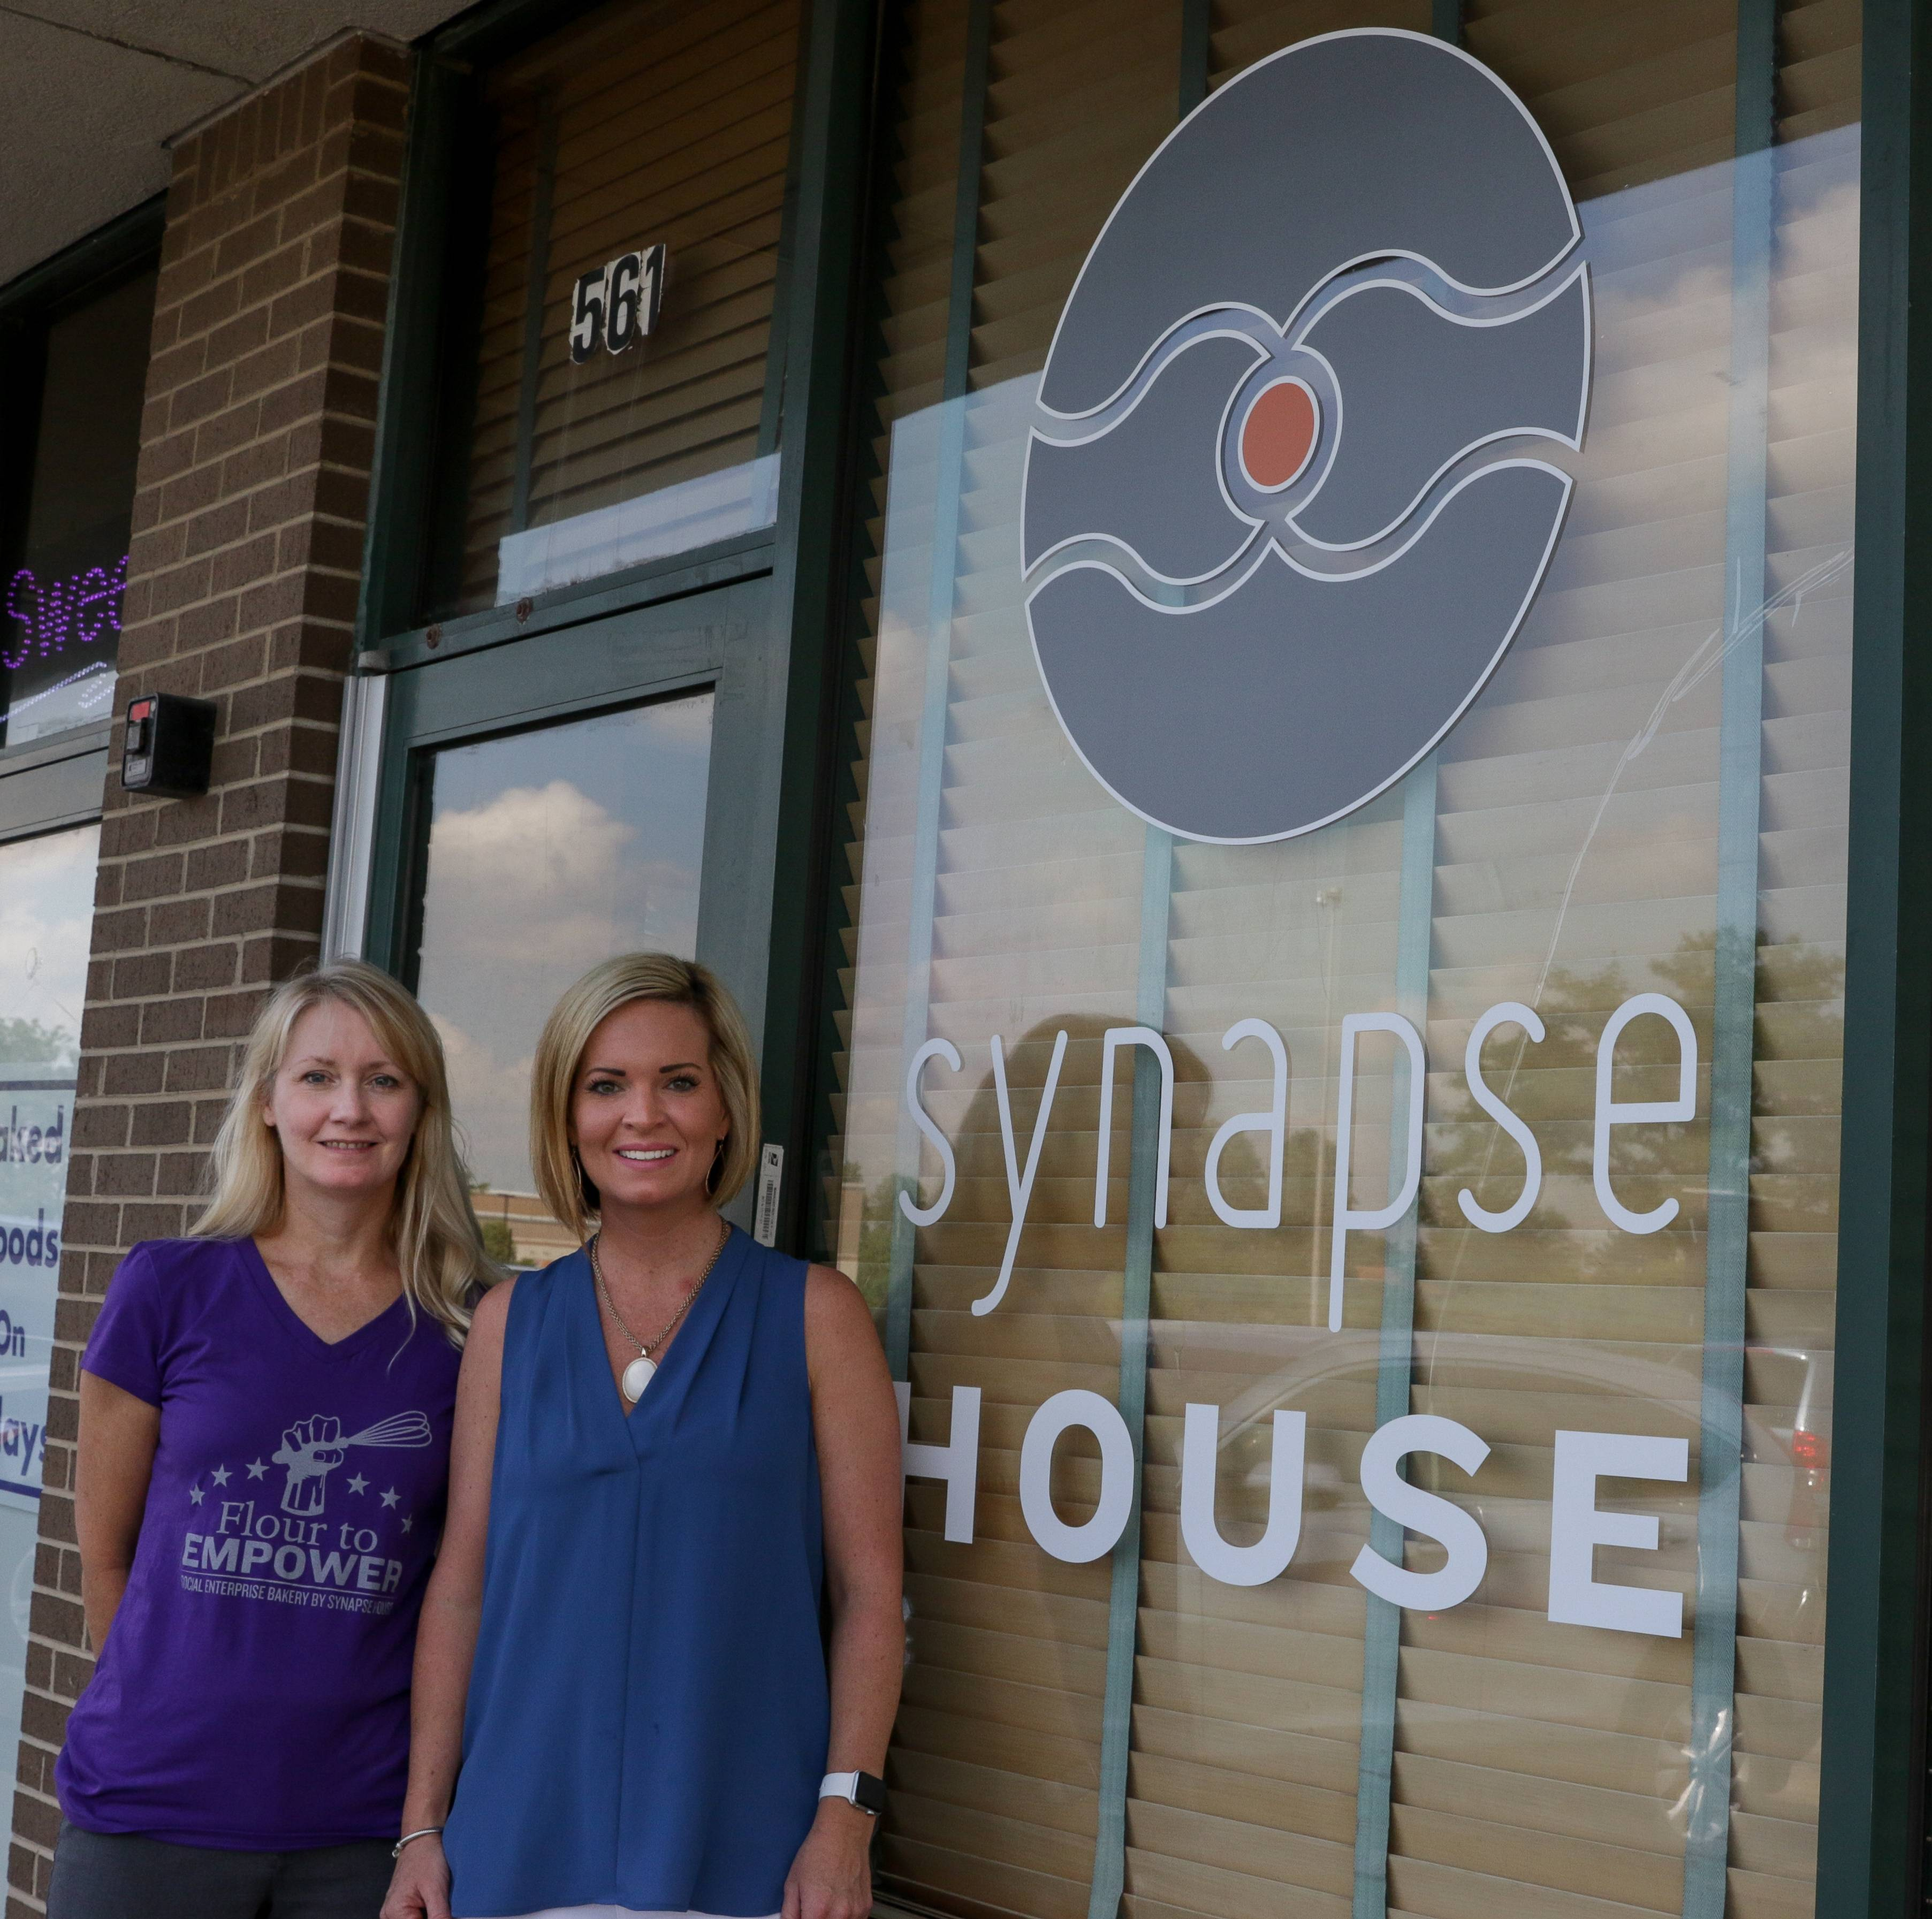 Deborah Giesler, director of Synapse House in Elmhurst, left, with Becky Kostelny of Elmhurst Junior Women's Club, right. The club raised $18,663 to buy a sign for Synapse House.